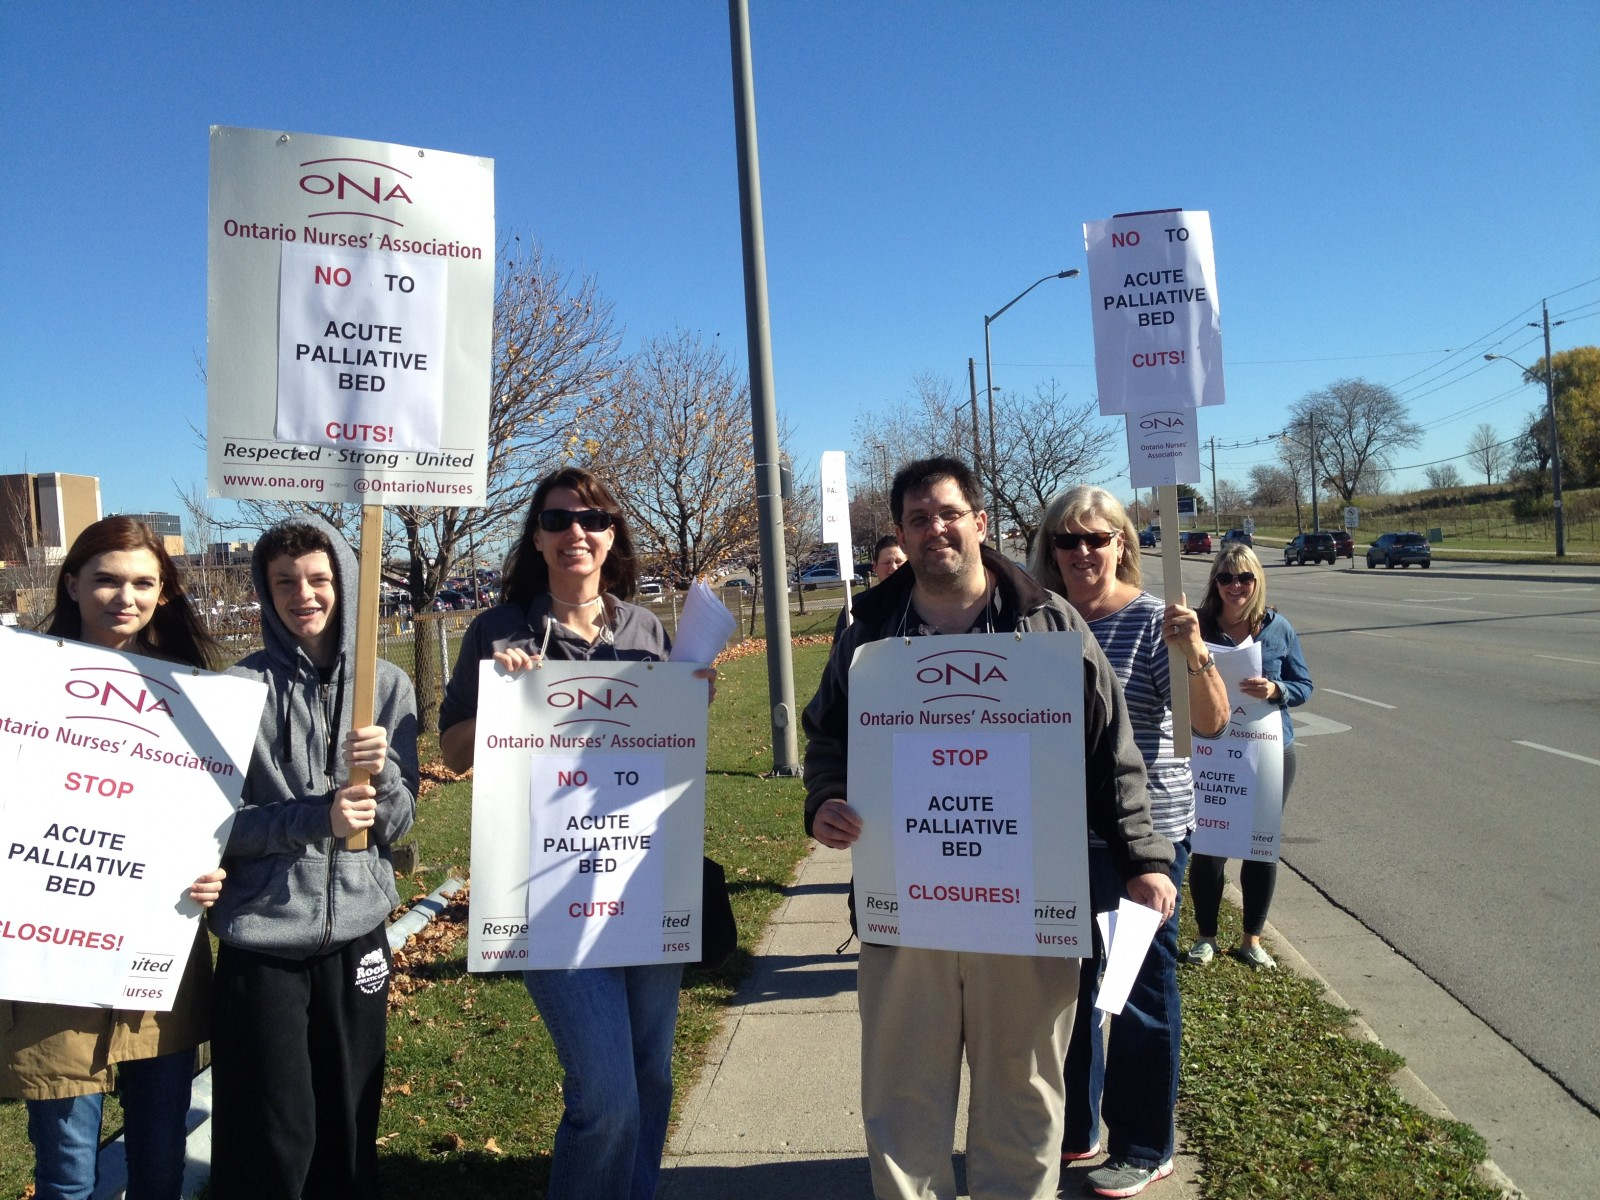 Nurses picket against palliative care cuts at LHSC